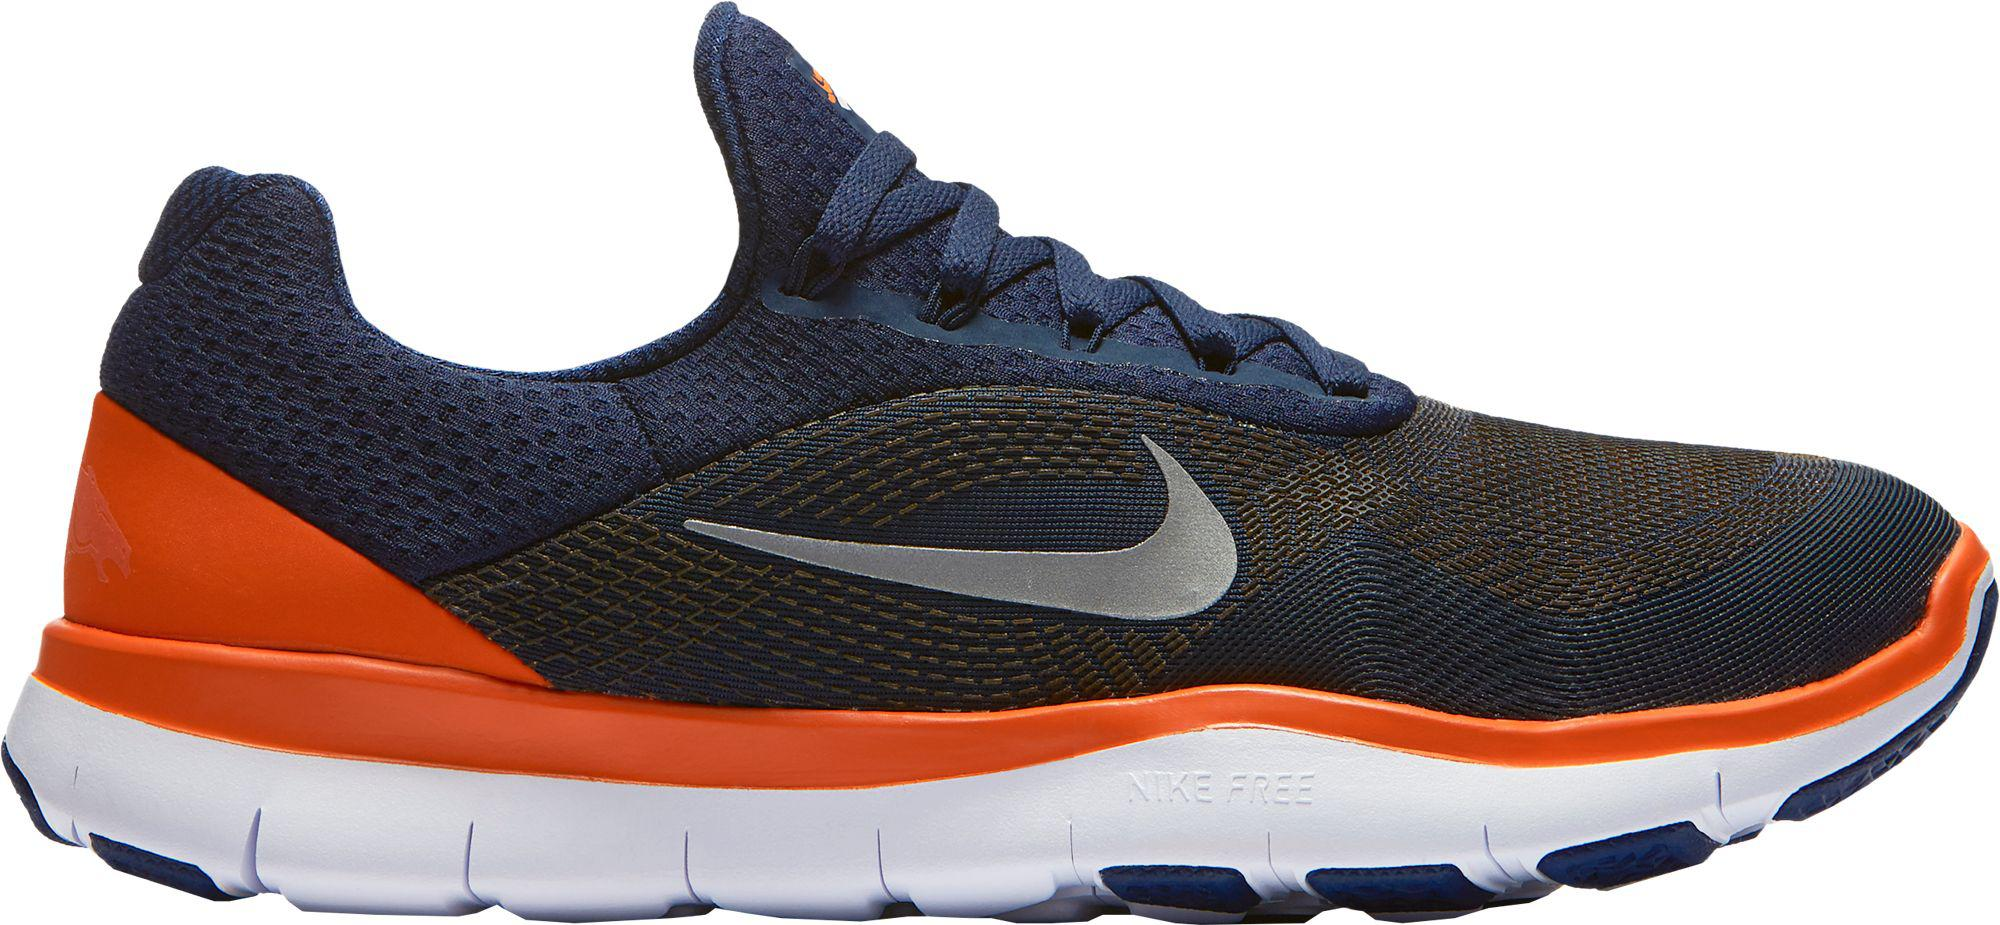 best service 9e664 aa579 Nike - Blue Free Trainer V7 Nfl Broncos Training Shoes for Men - Lyst